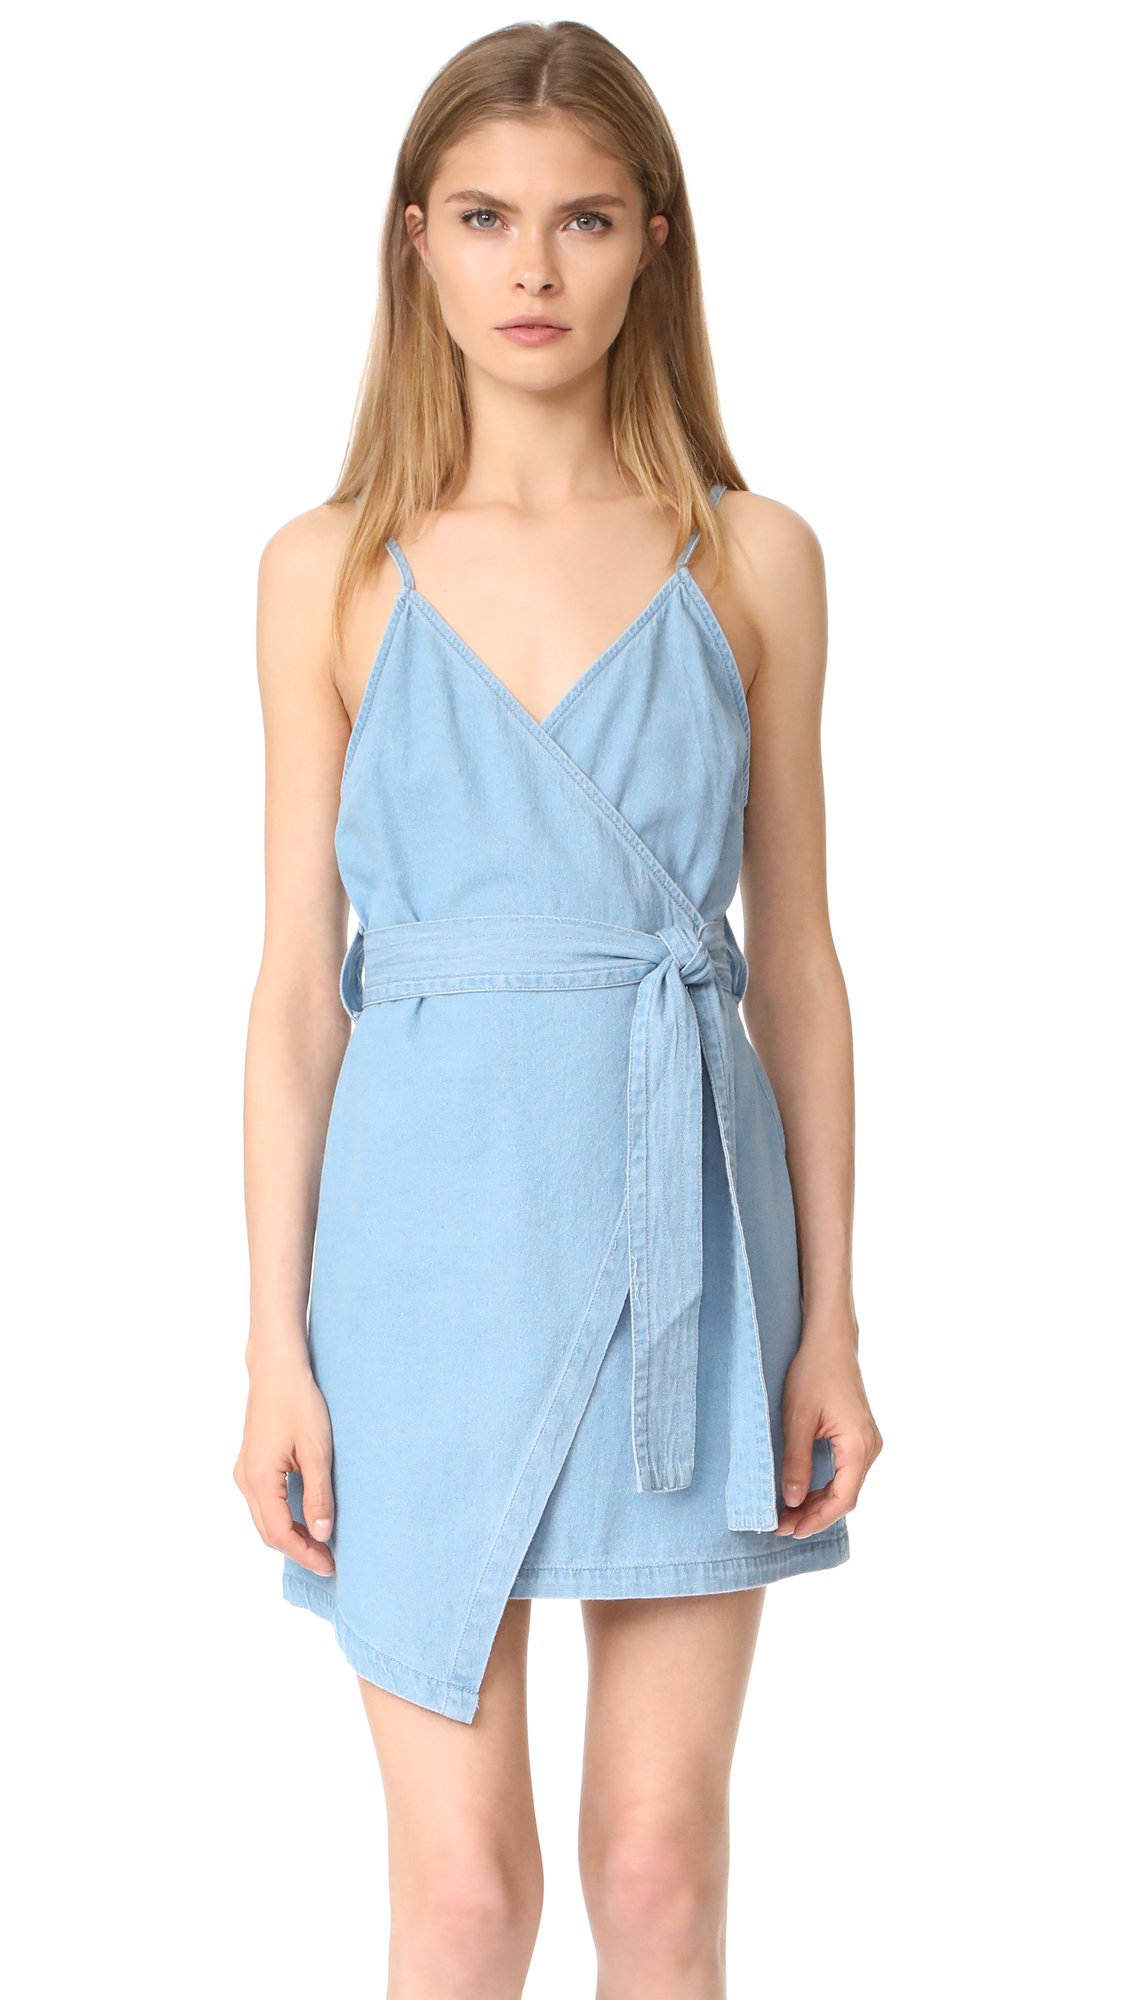 Available at Amazon: The Fifth Label Women's Blue Eyes Denim Wrap Belted Dress